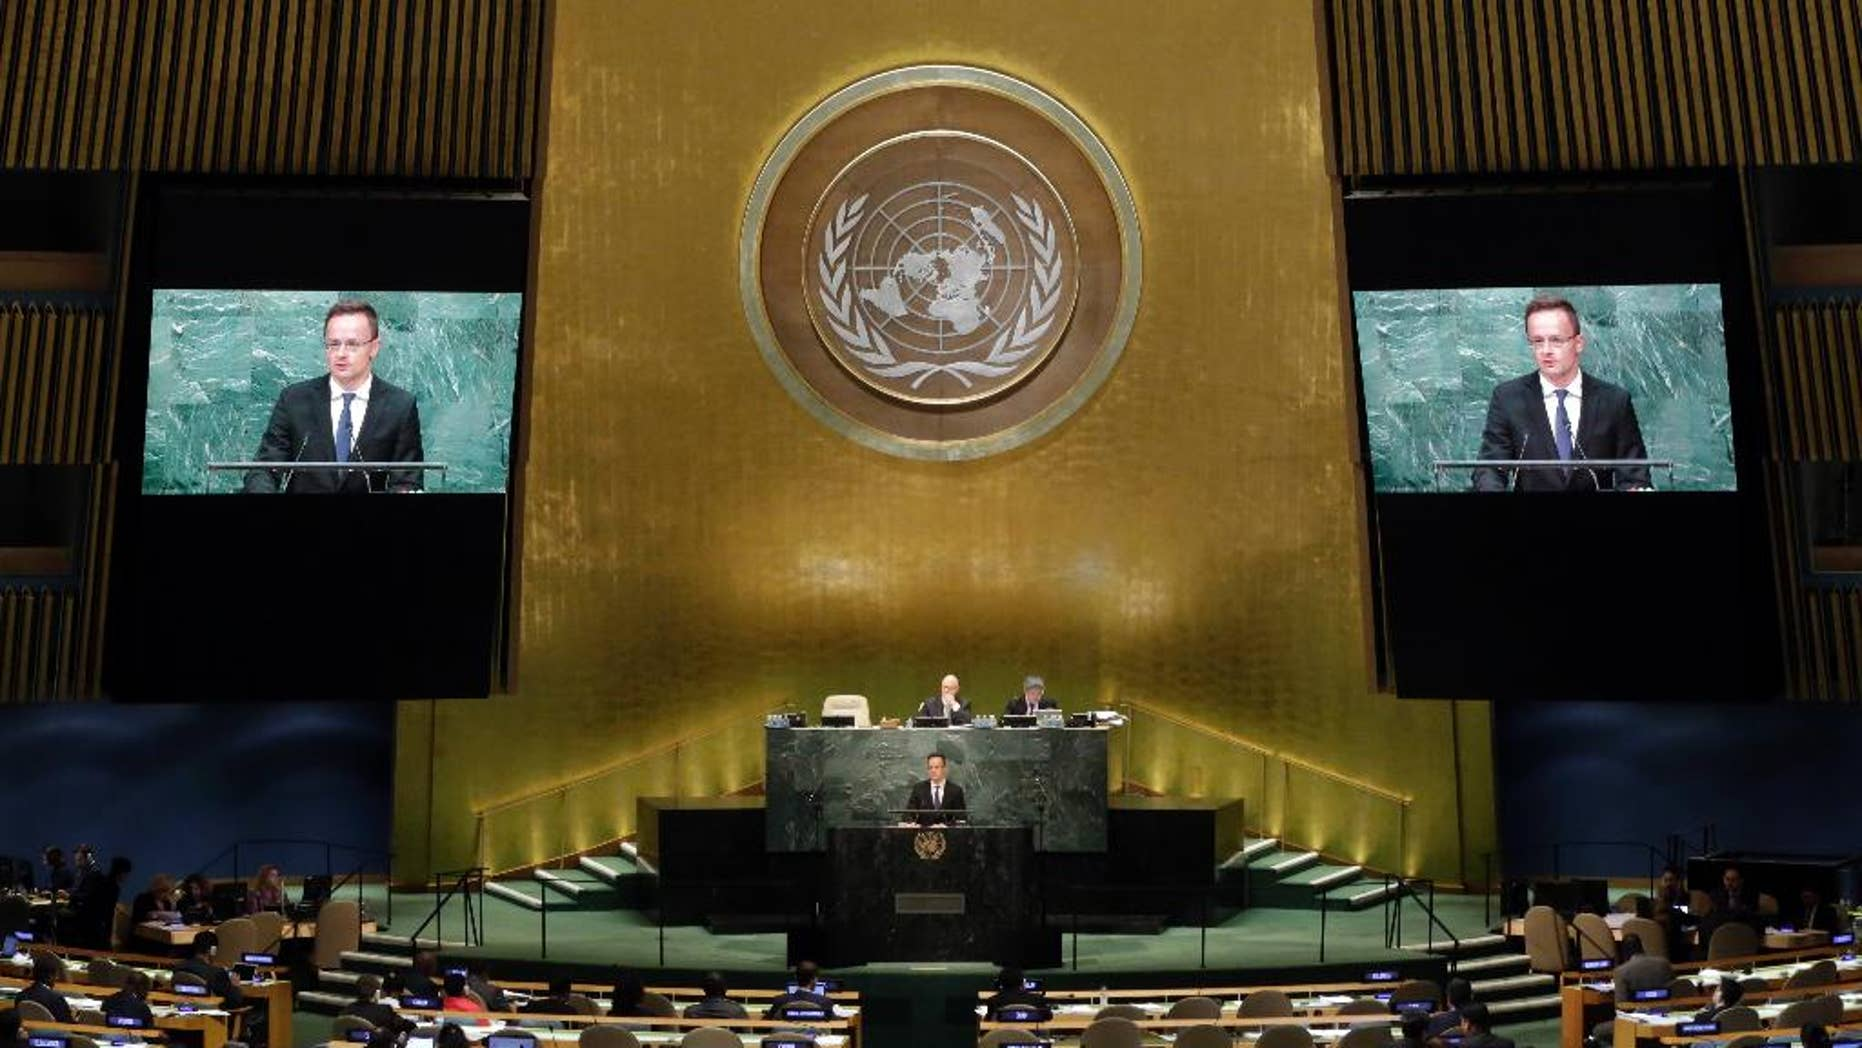 Hungary's Foreign Minister Peter Szijjarto addresses the 71st session of the United Nations General Assembly, at U.N. headquarters, Friday, Sept. 23, 2016. (AP Photo/Richard Drew)